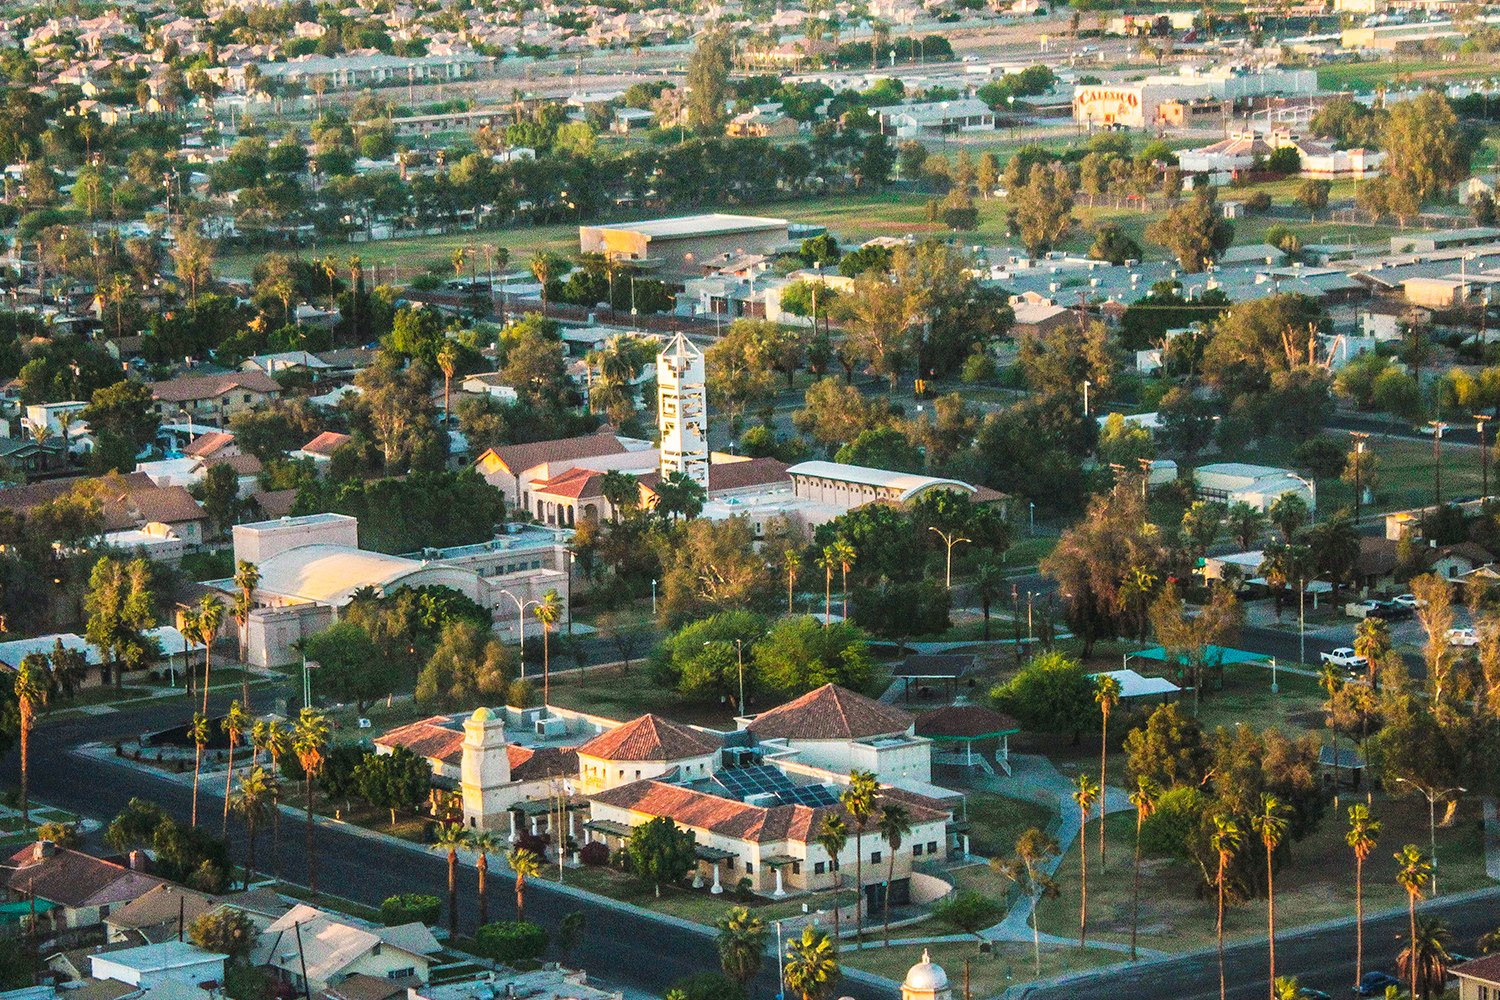 city of calexico california